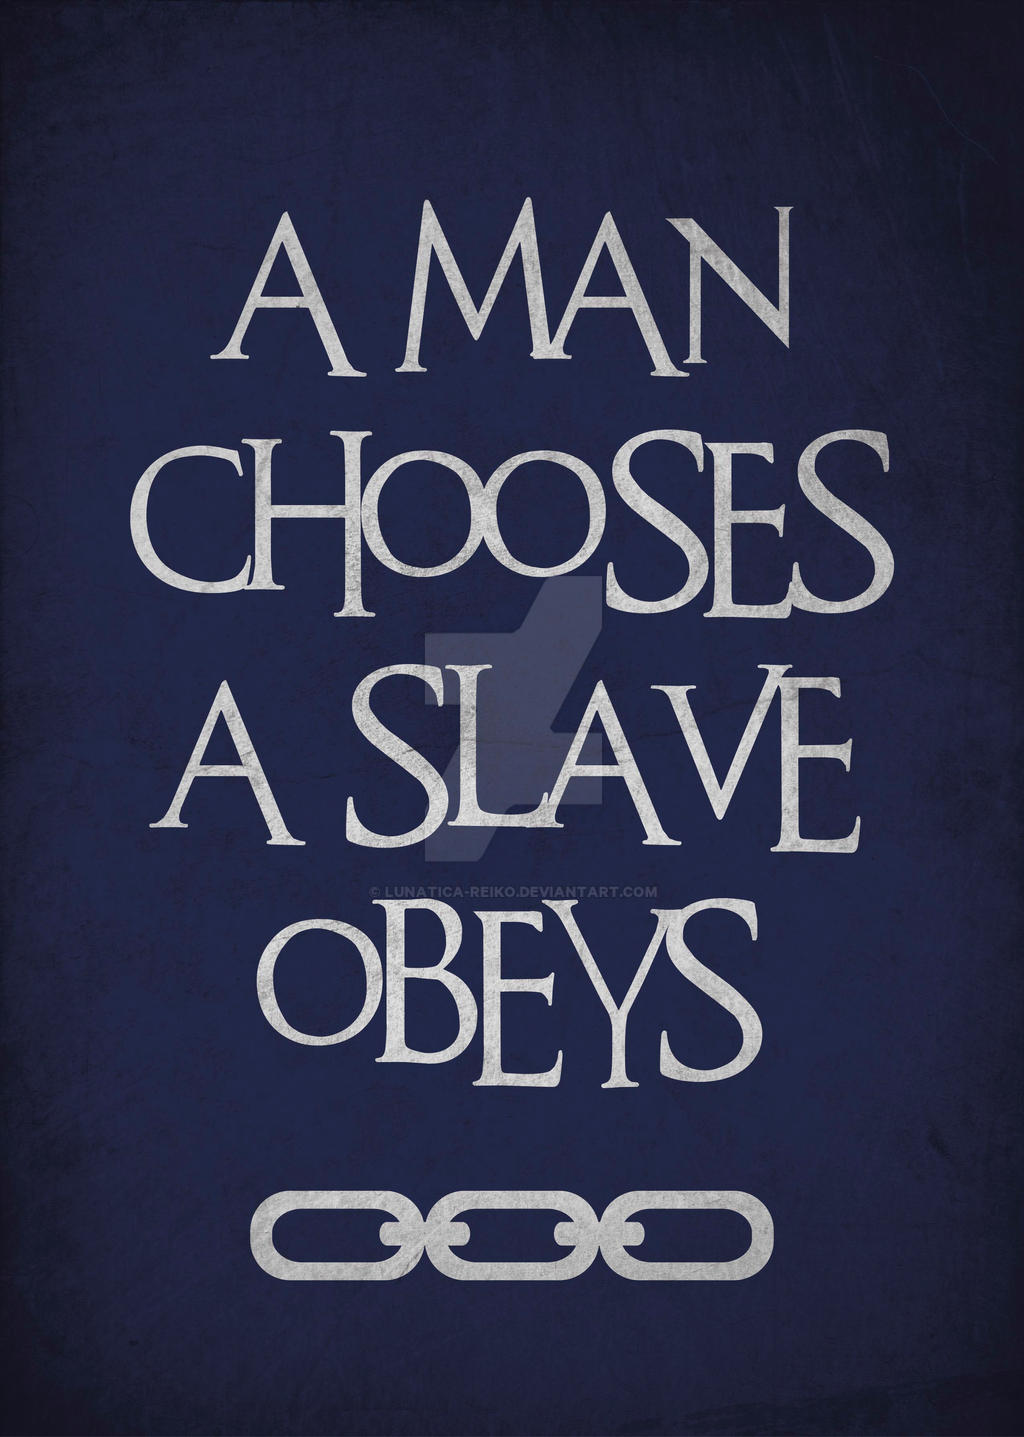 b6871a124 Bioshock - A man chooses a slave obeys by Lunatica-Reiko on DeviantArt